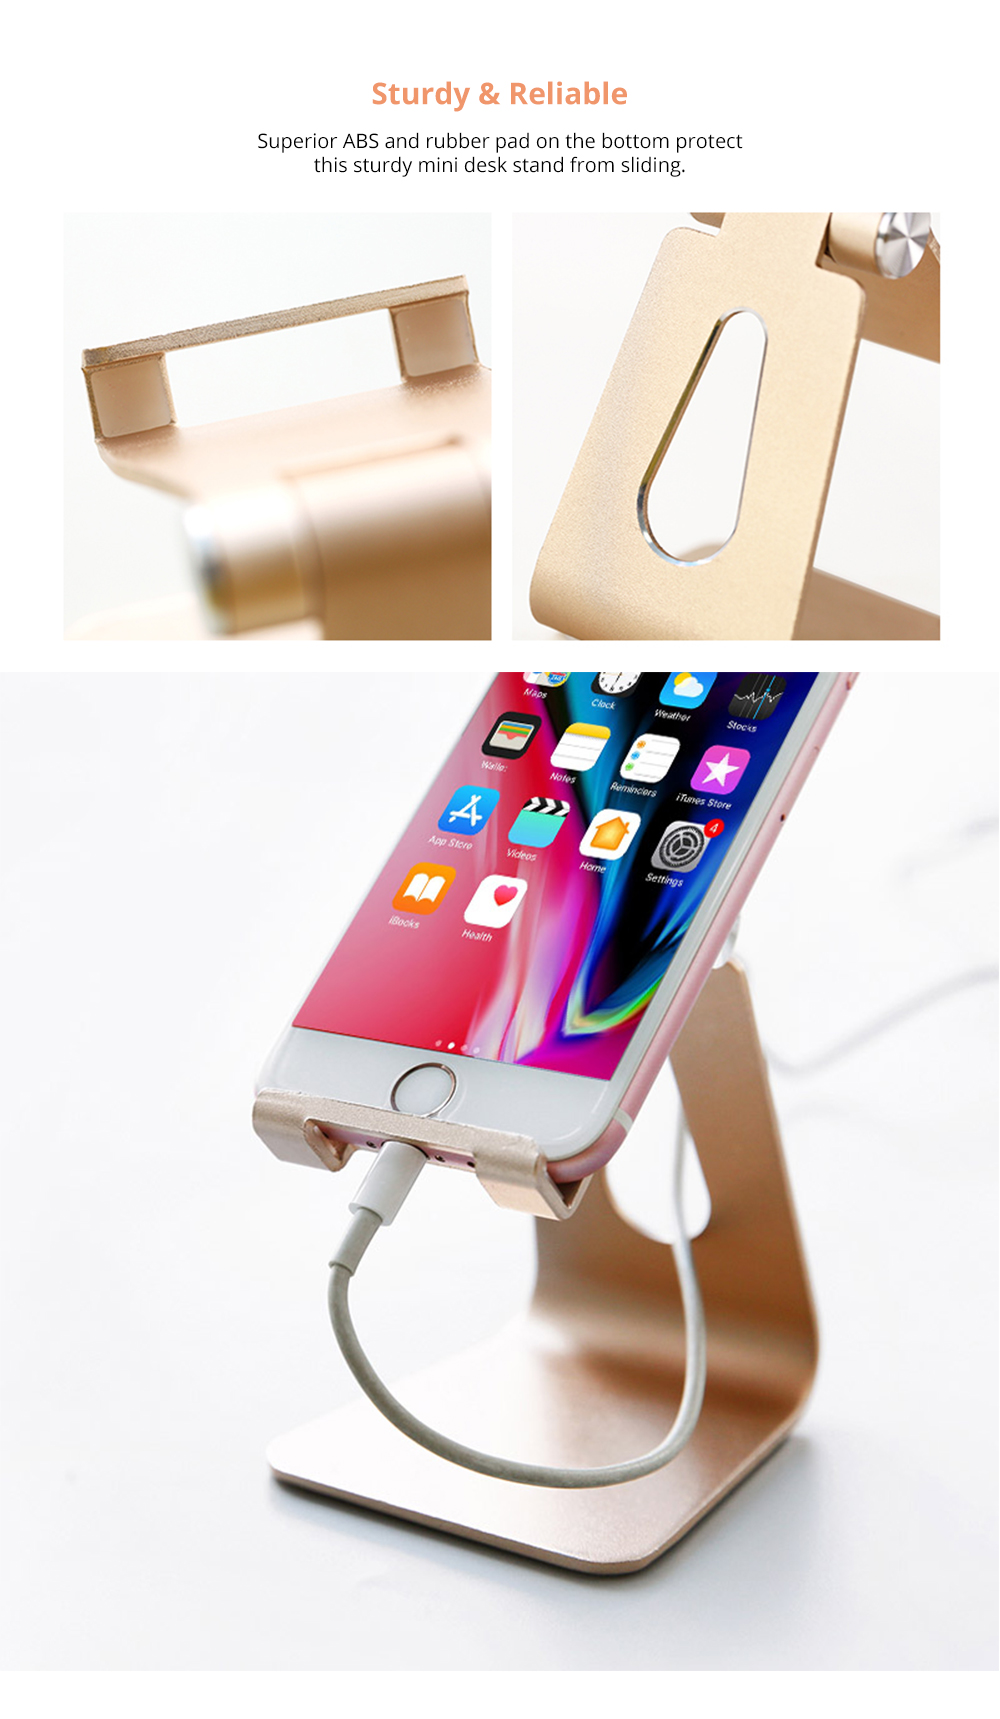 Sturdy & Reliable stand